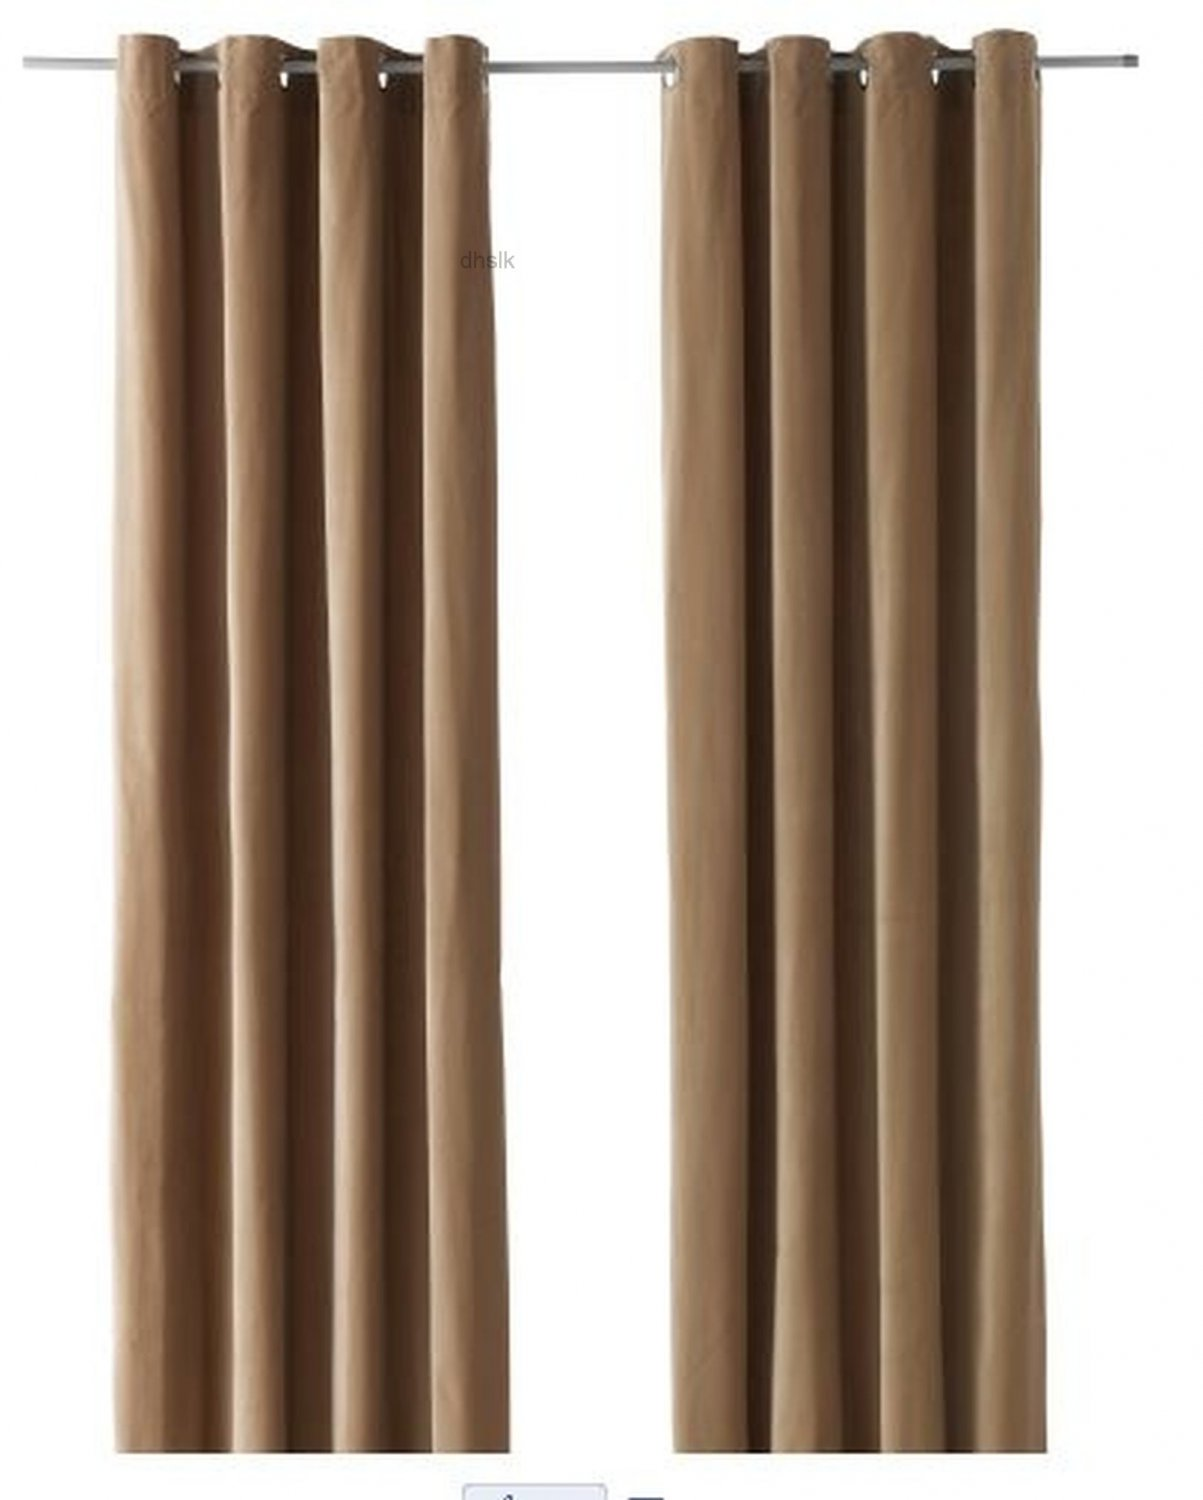 Ikea sanela curtains drapes 2 panels beige velvet 118 for Ikea curtain rods uk